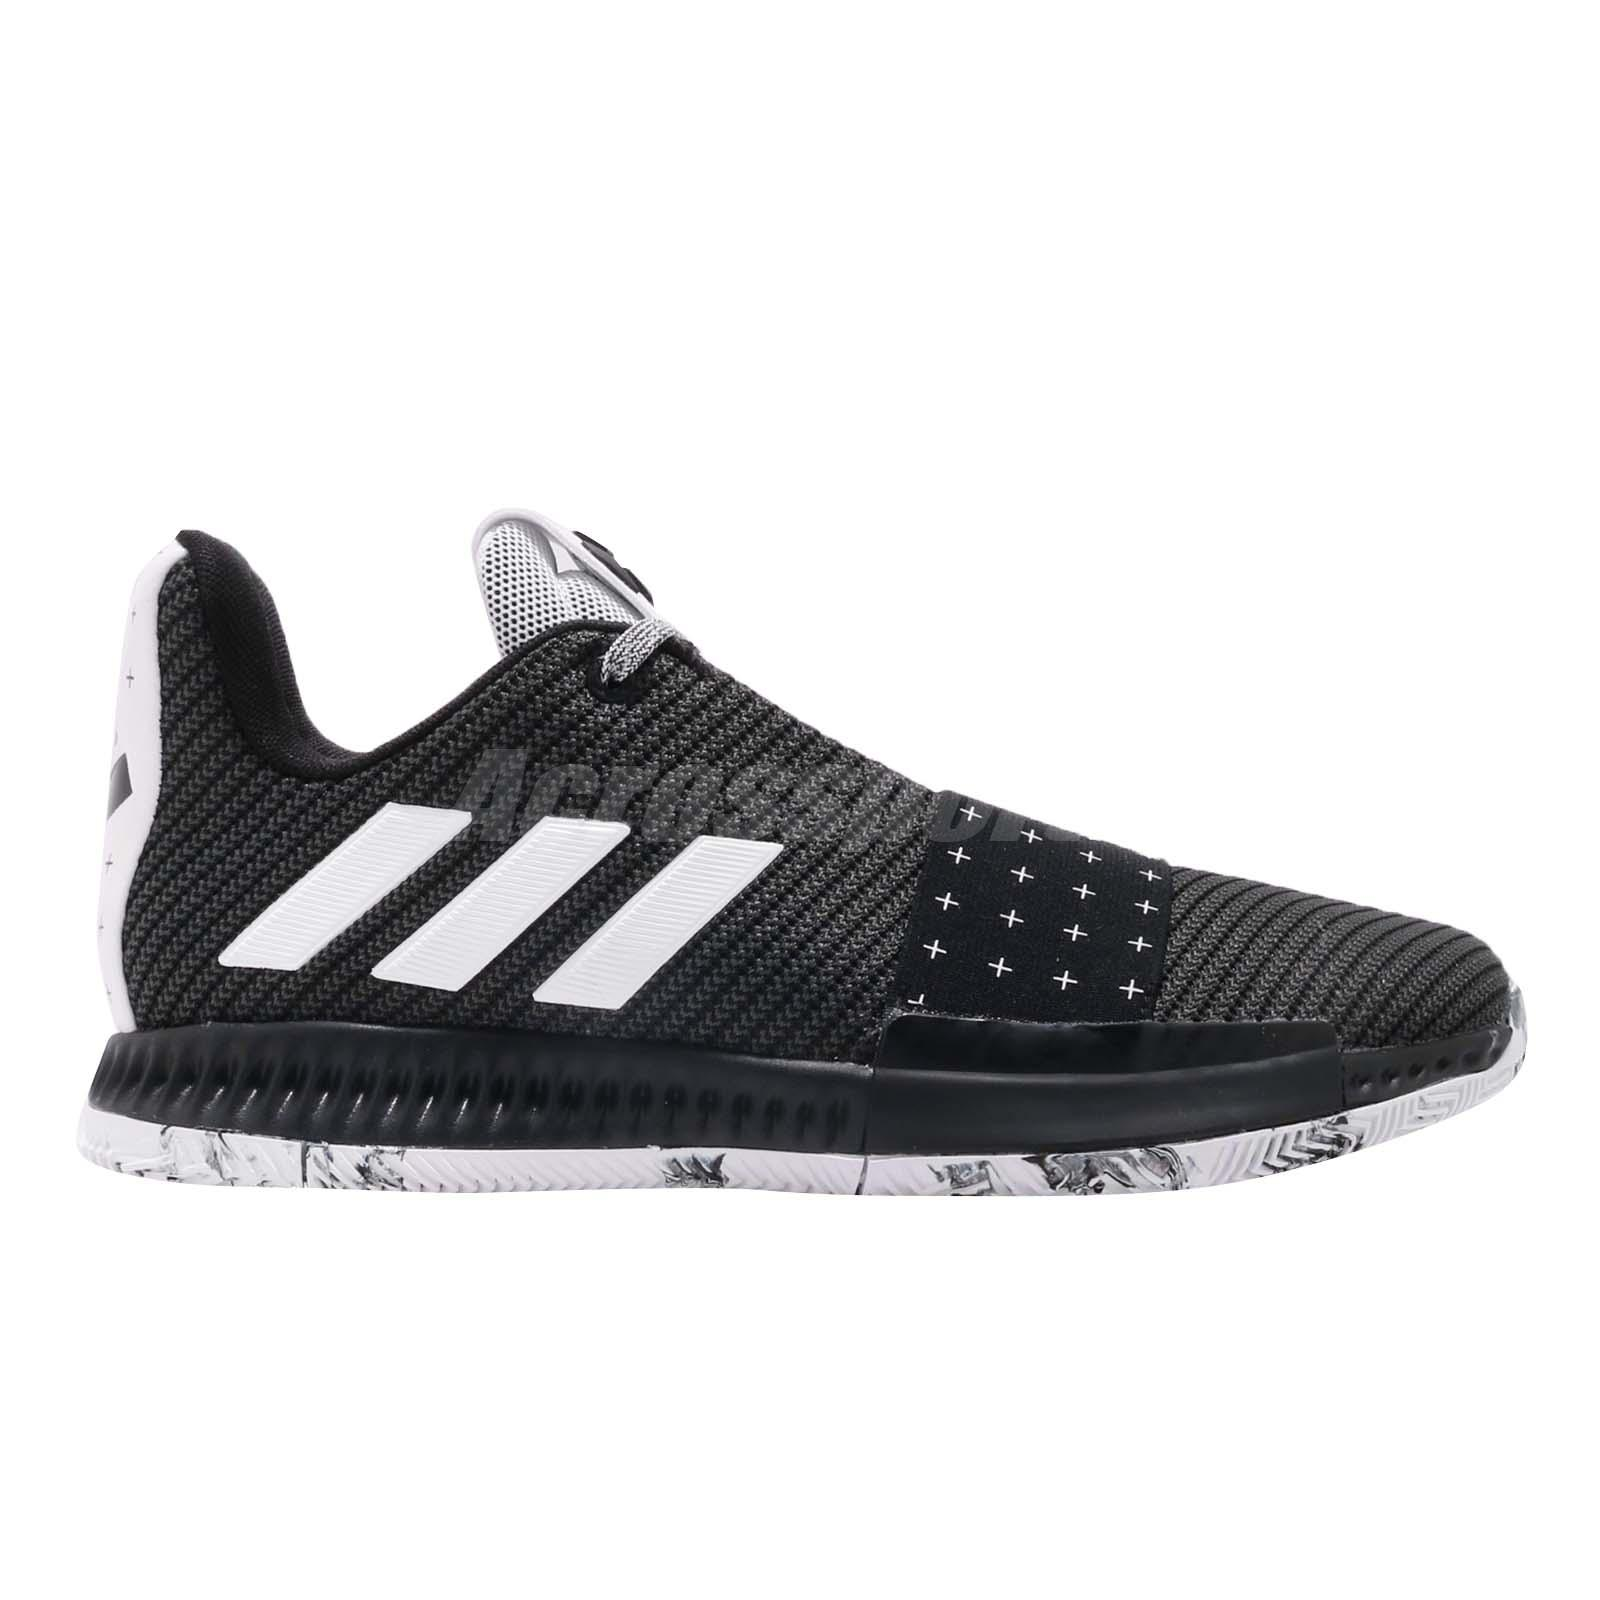 8bb76761 Details about adidas Harden Vol. 3 J James Black White Youth Womens  Basketball Shoes AC7616